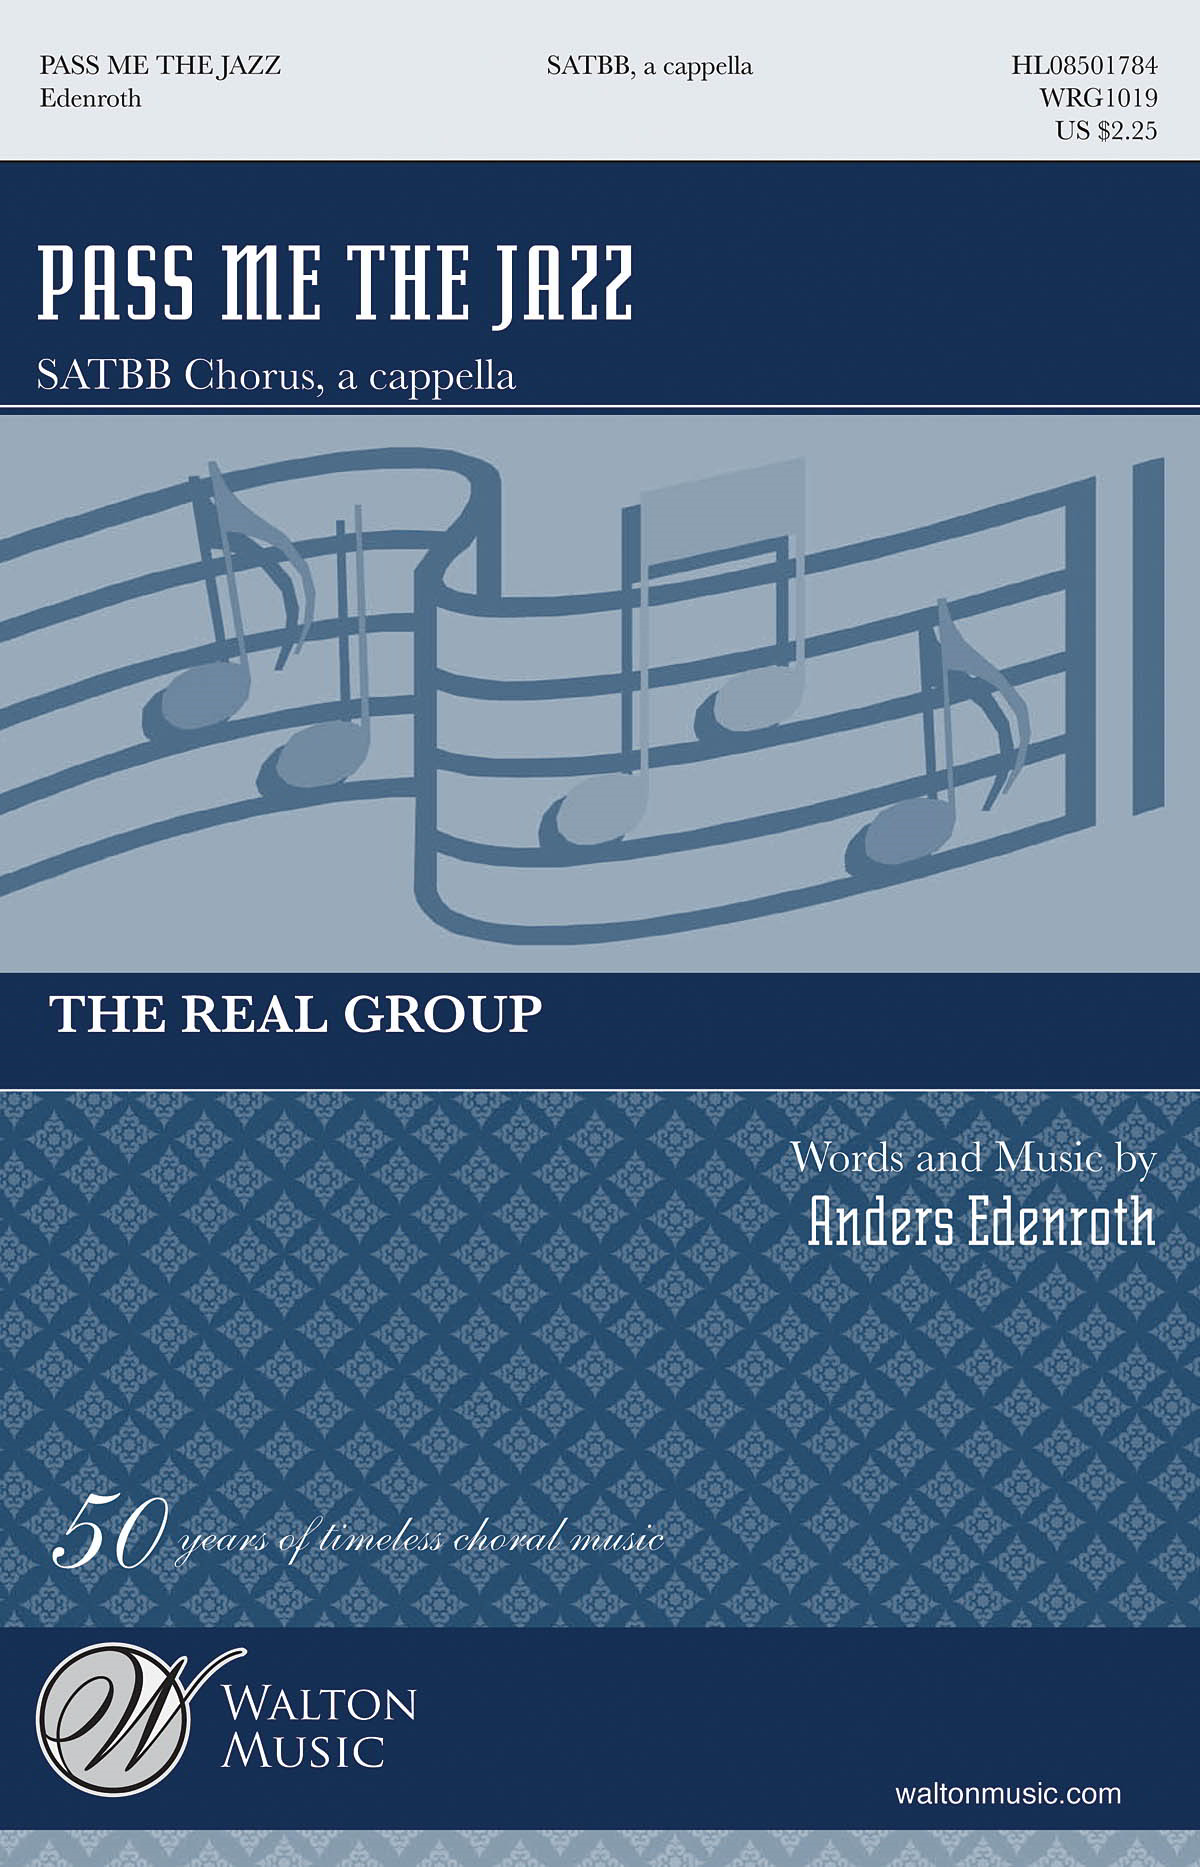 Edenroth: Pass Me the Jazz SATBB published by Walton